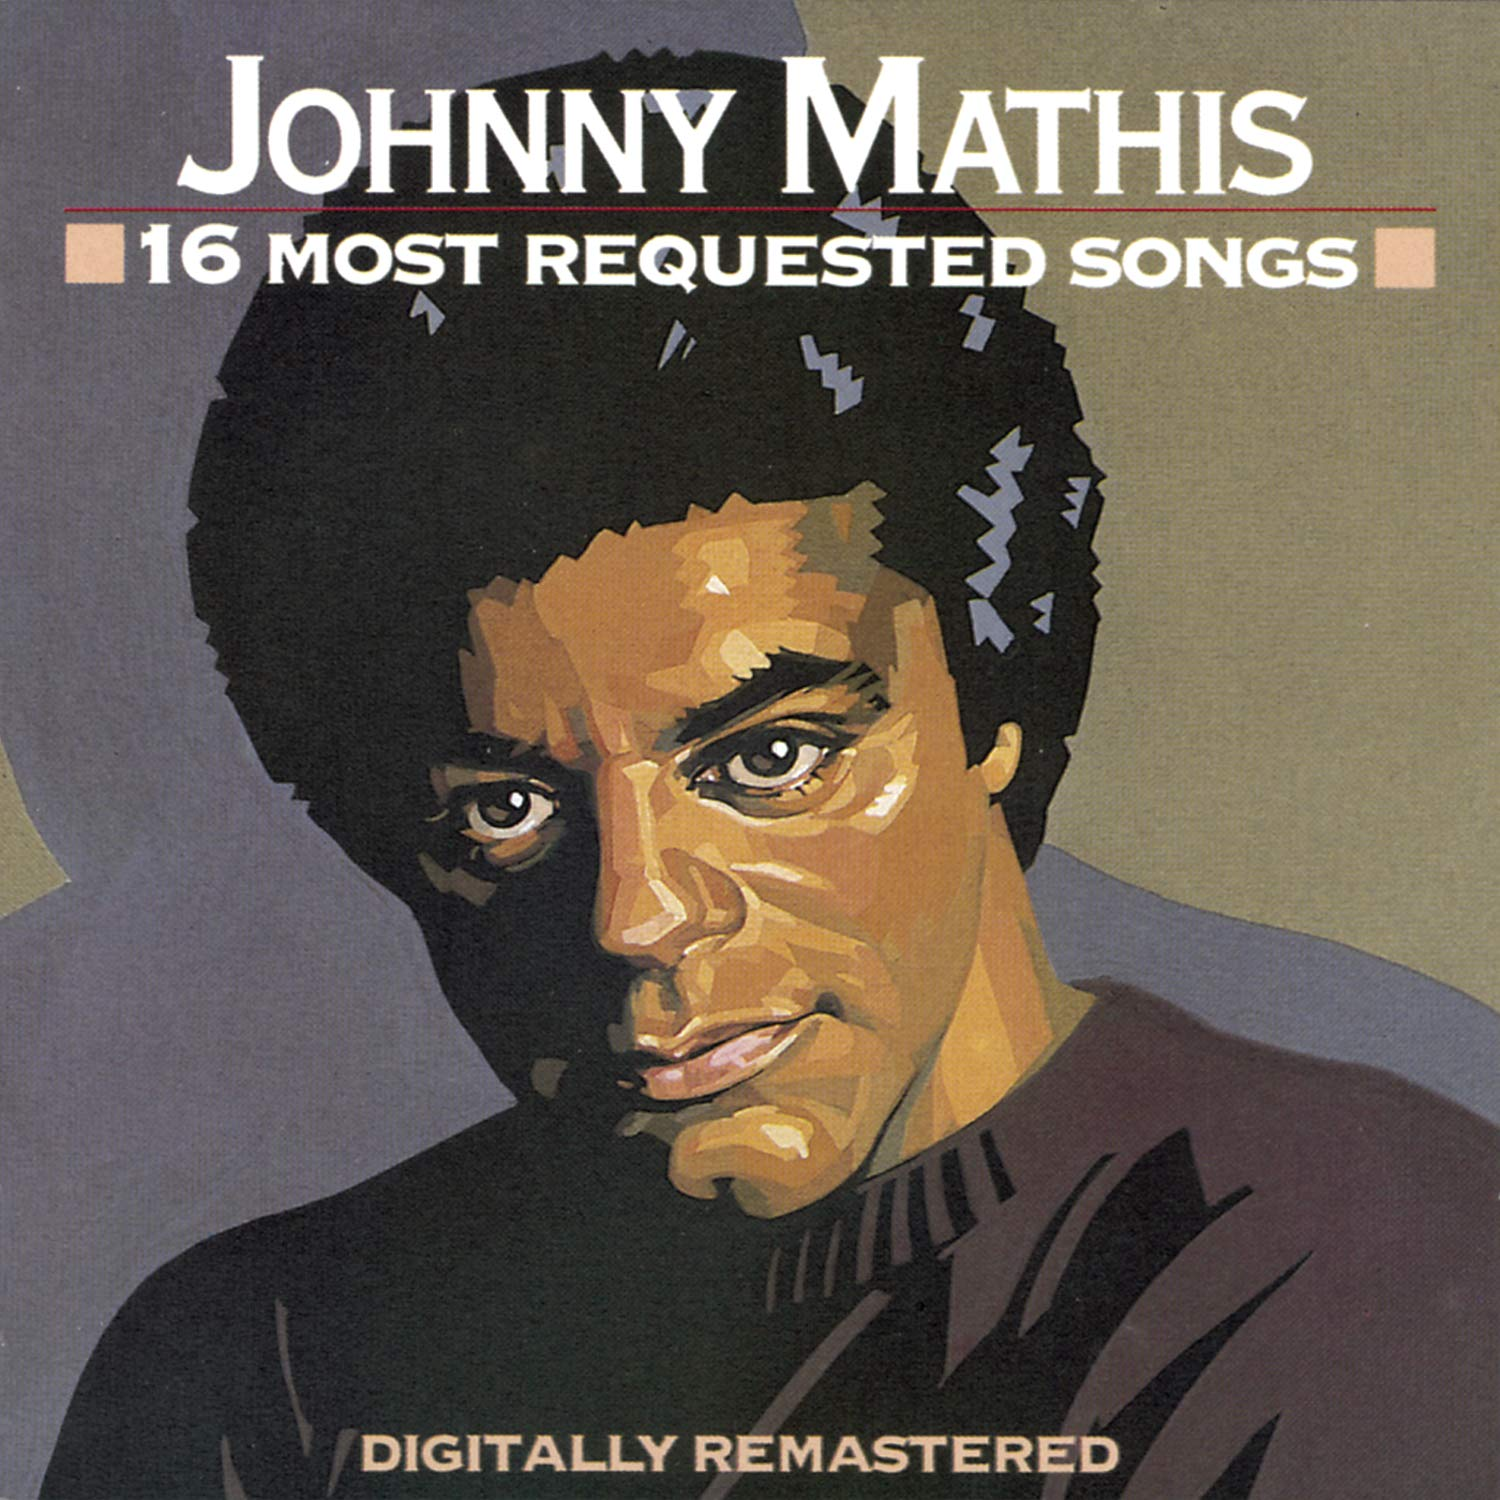 Johnny Mathis Wedding.16 Most Requested Songs